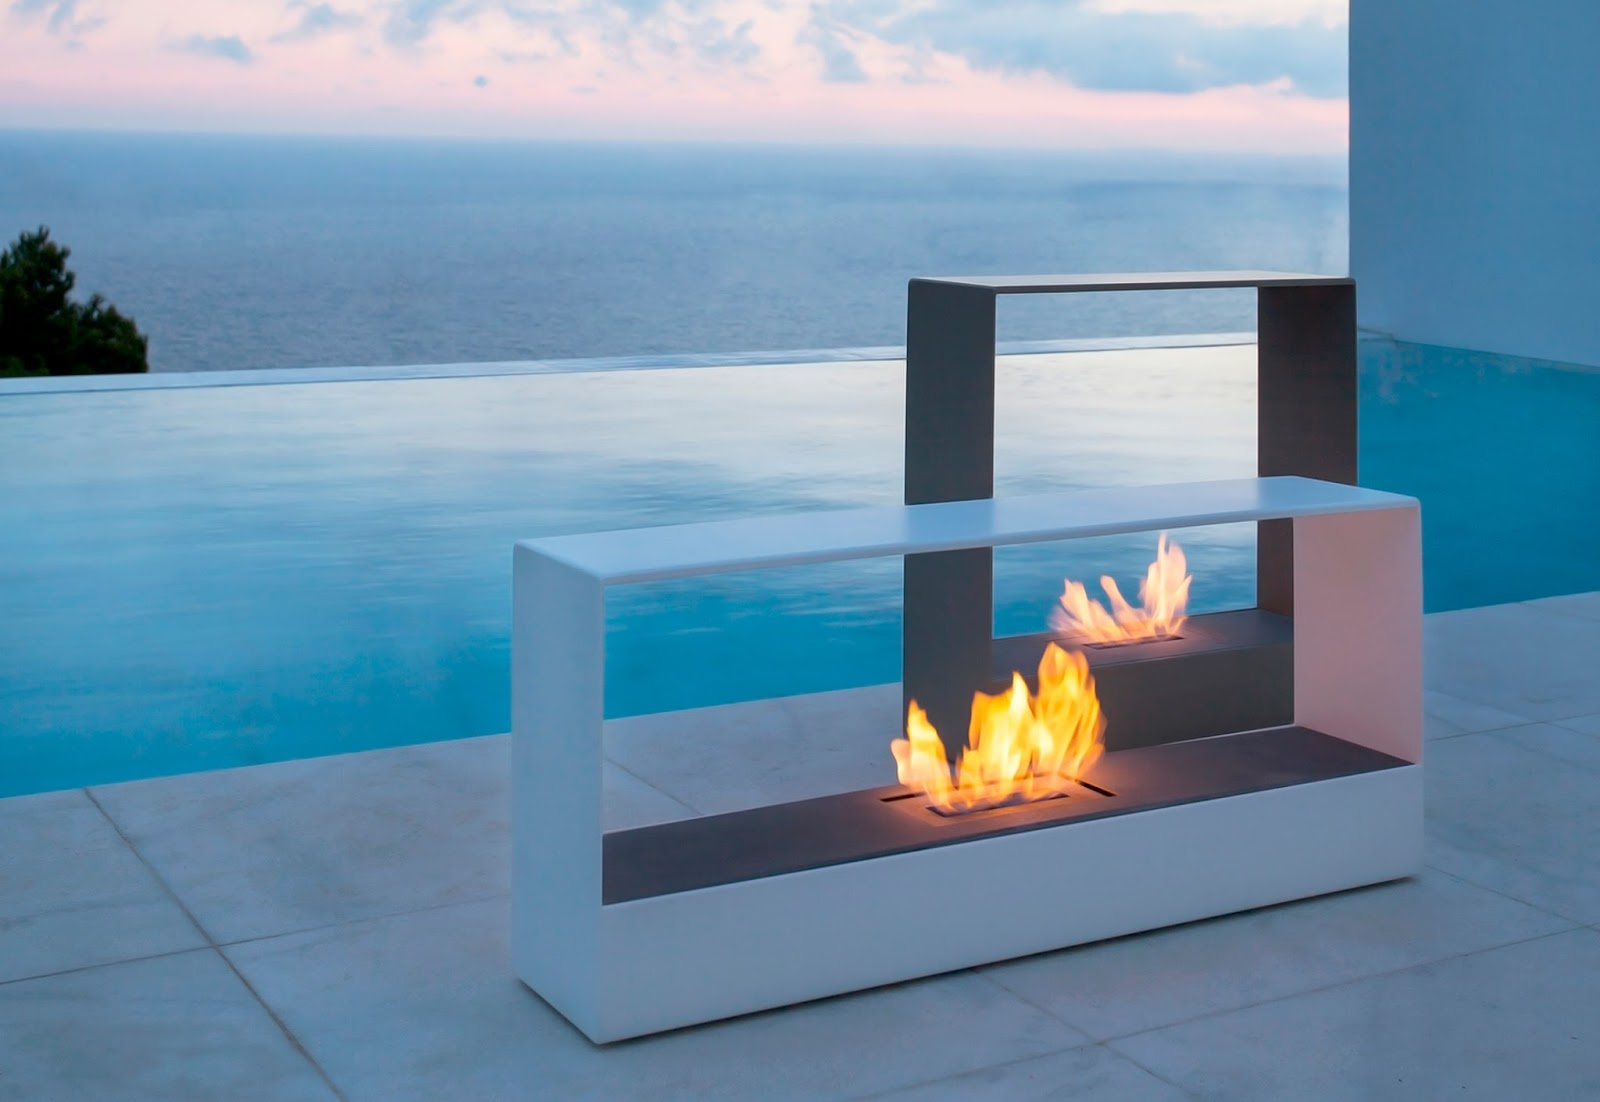 Ideas on How to Modern Outdoor Fireplace : Modern Outdoor Gas Fireplace. Modern outdoor gas fireplace. outdoor